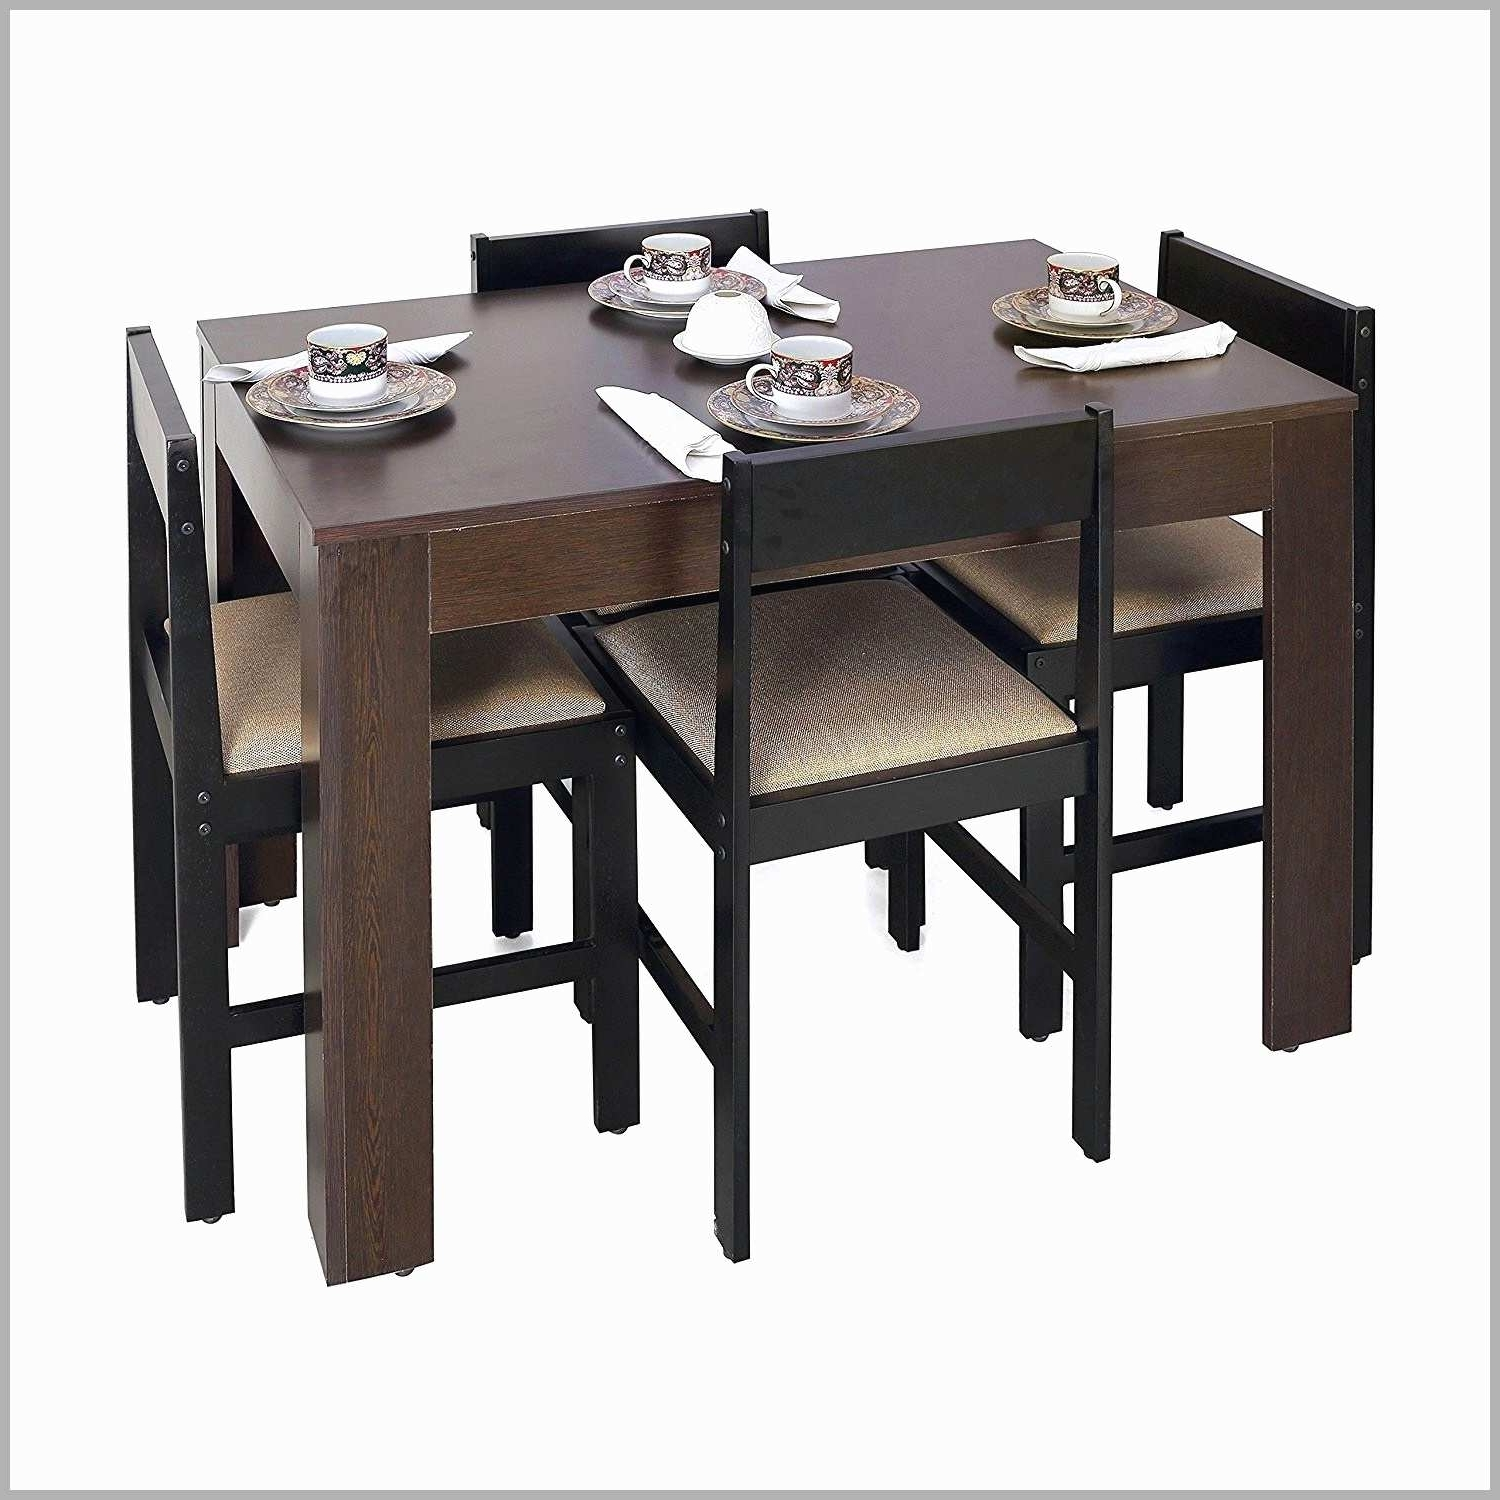 3 Piece Dining Room Set Elegant 8 Seater Dining Table Set Inside Famous 8 Seater Black Dining Tables (View 2 of 25)